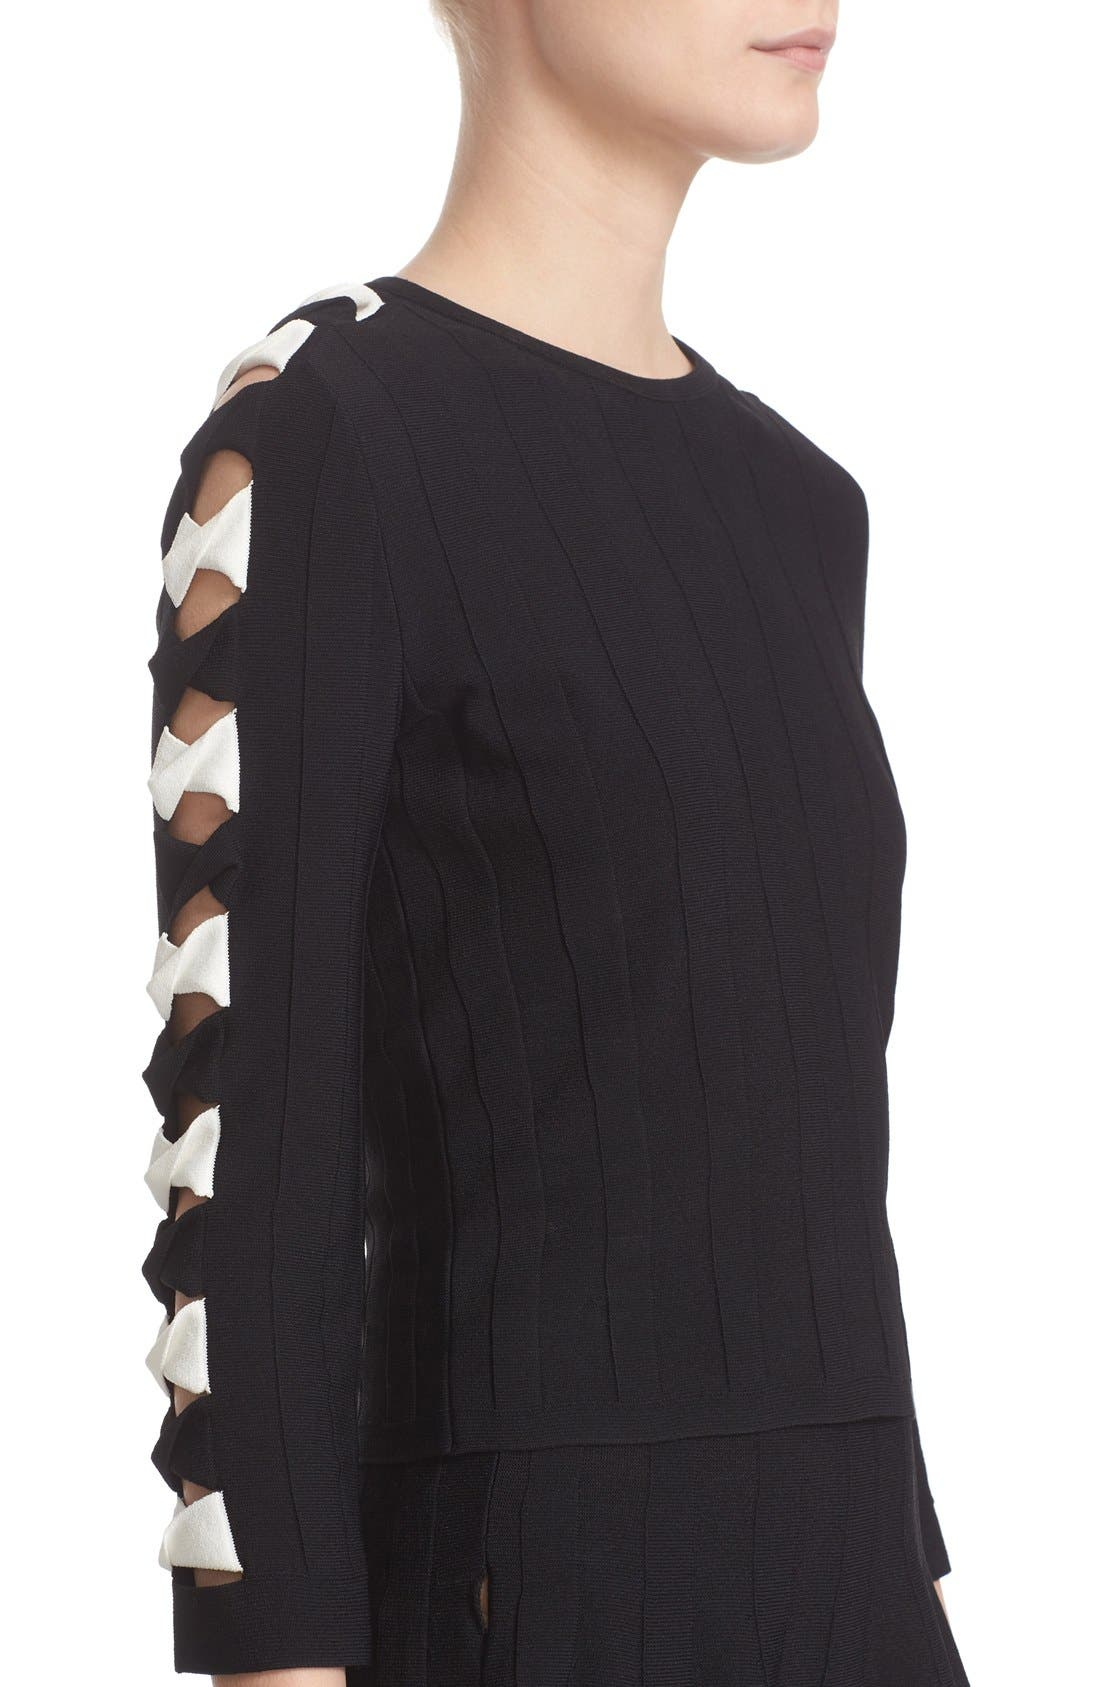 Twisted Cutout Knit Top,                             Alternate thumbnail 6, color,                             Black/ Ivory